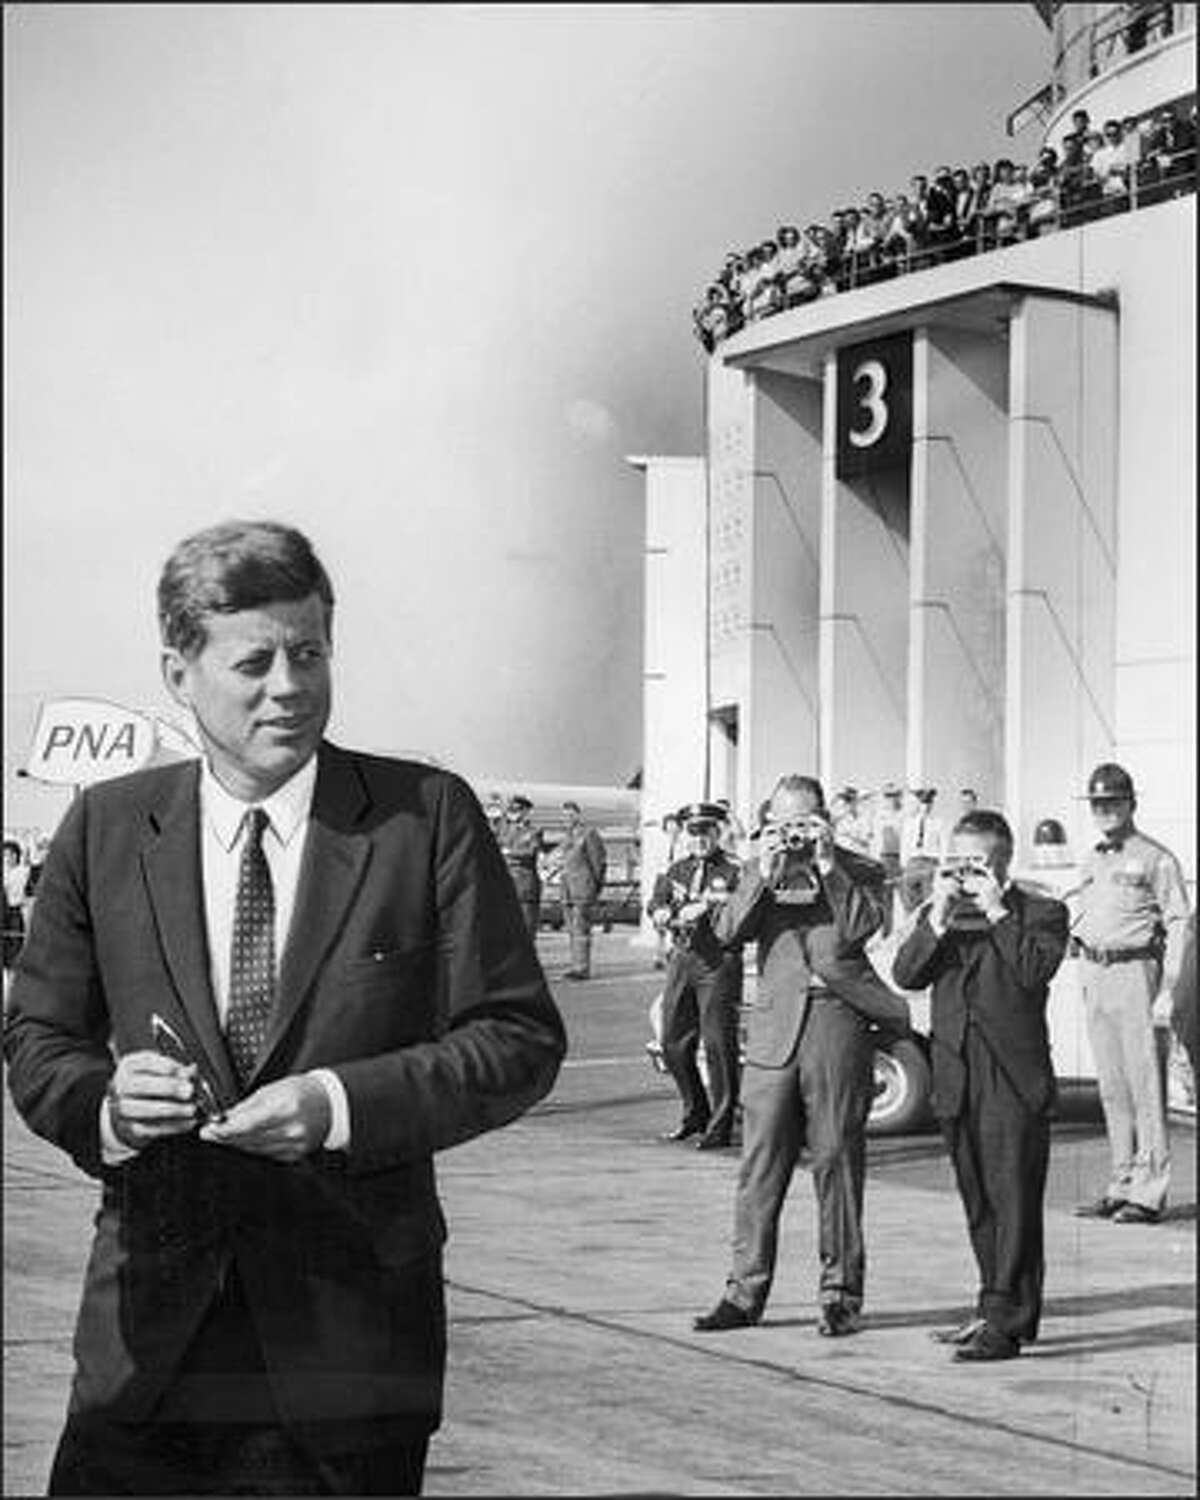 On September 27, 1963, President John F. Kennedy stands at Sea-Tac Airport as a crowd watches from the observation deck. Kennedy was assassinated less than two months later.